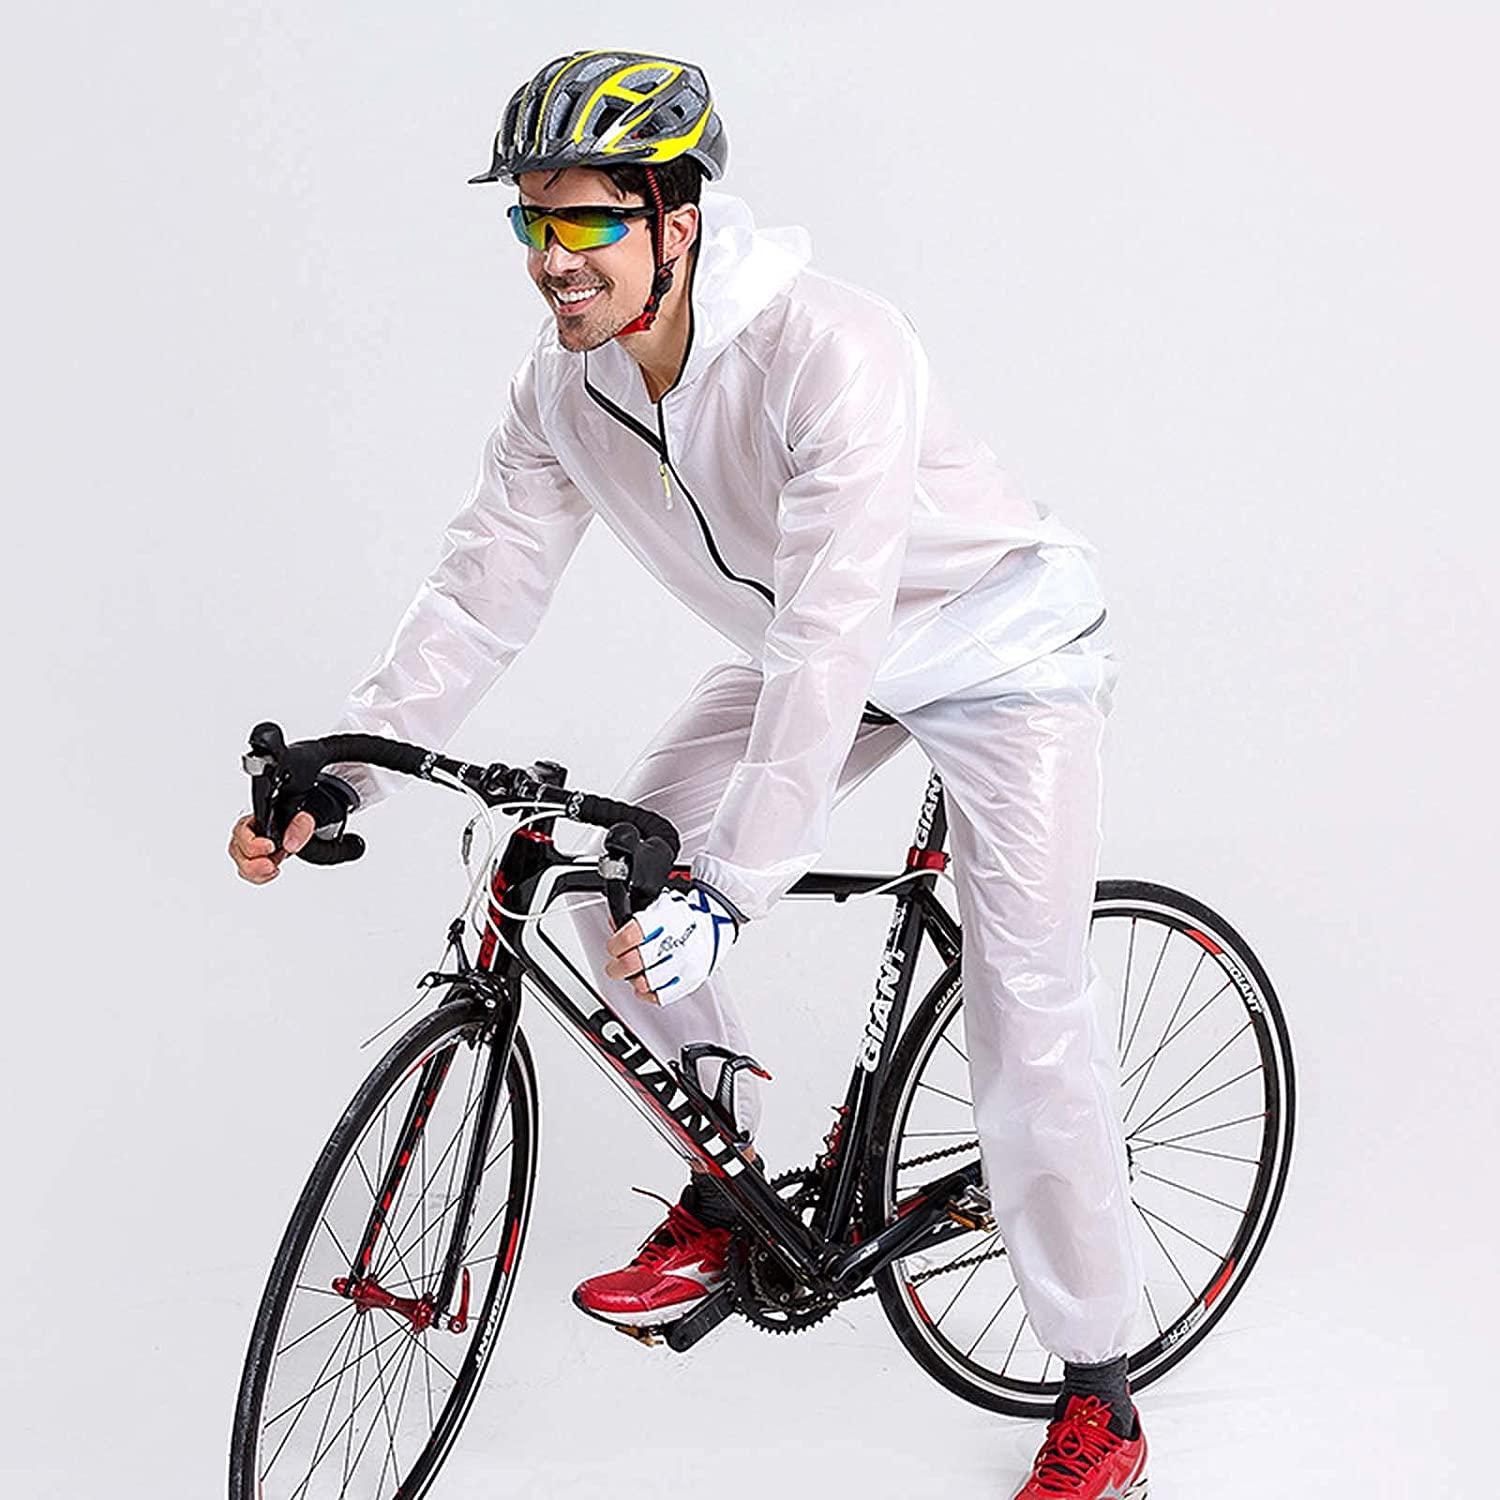 FHGH Men's Split Raincoat for Cycling, Portable Raincoat and Trousers Set, for Riding, Hiking and Traveling,C,Medium